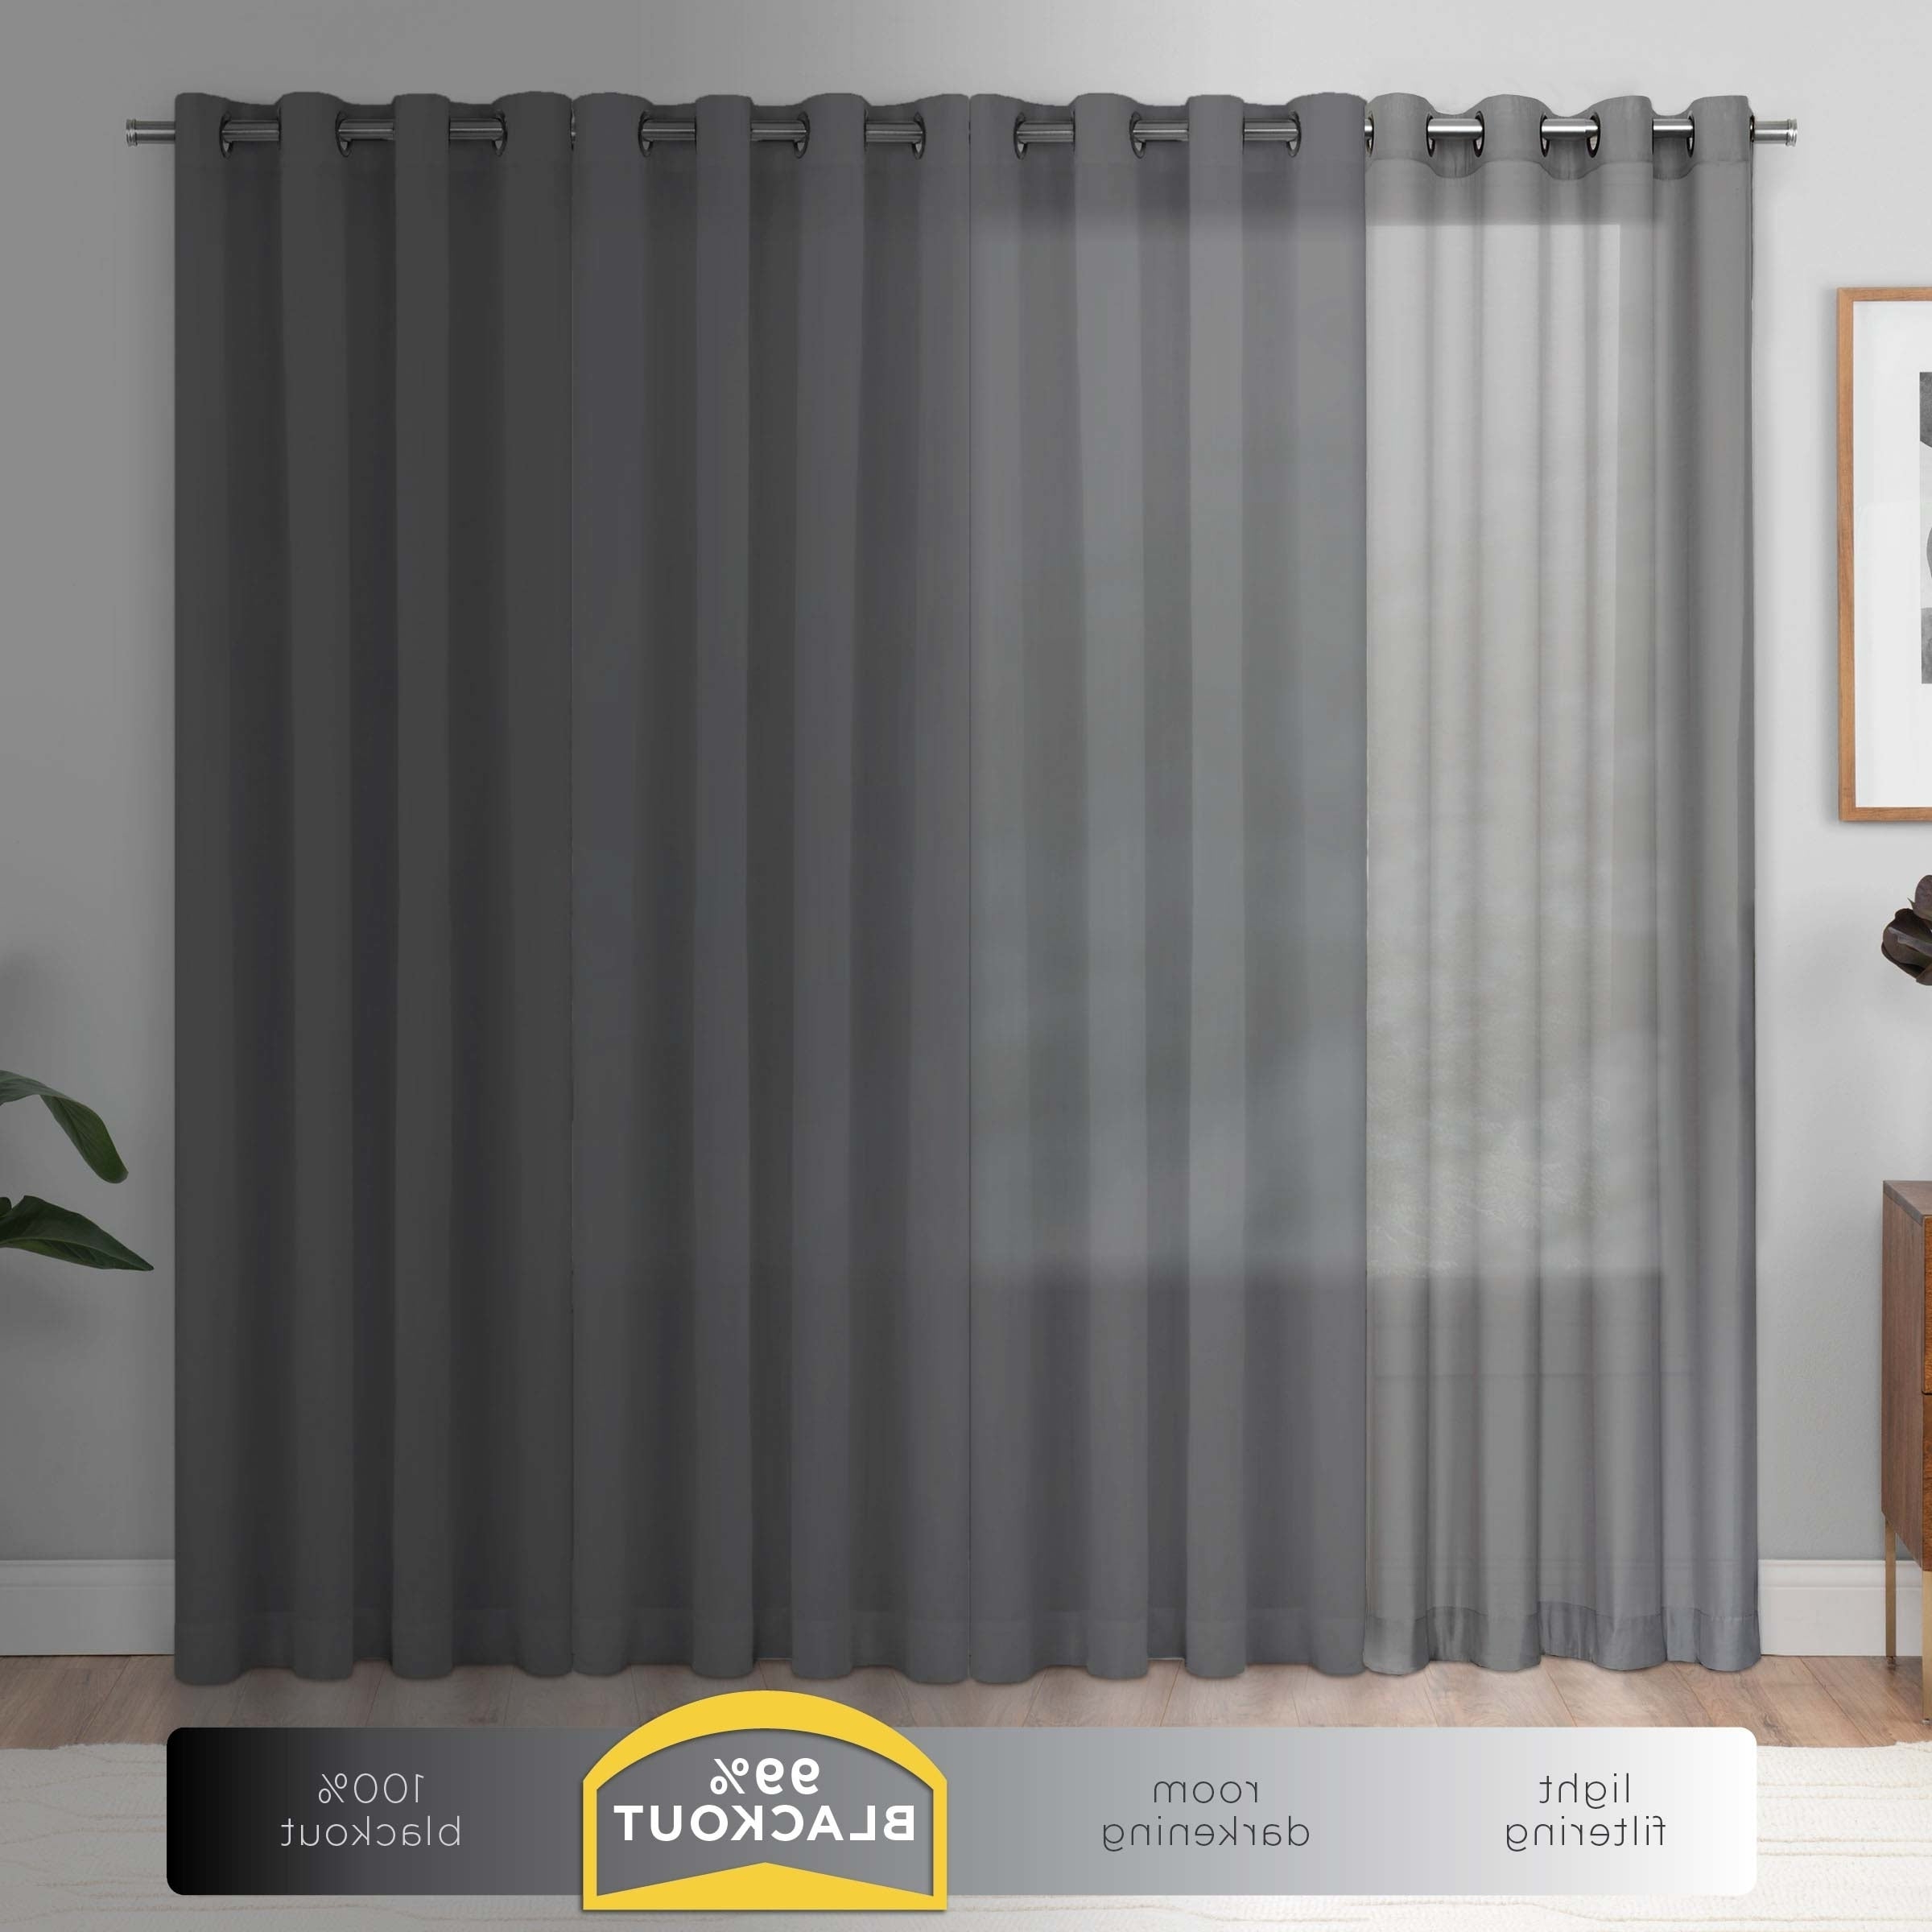 Eclipse Newport Blackout Curtain Panels With Regard To Fashionable Eclipse Newport Blackout Curtain Panel – 52x (View 7 of 20)